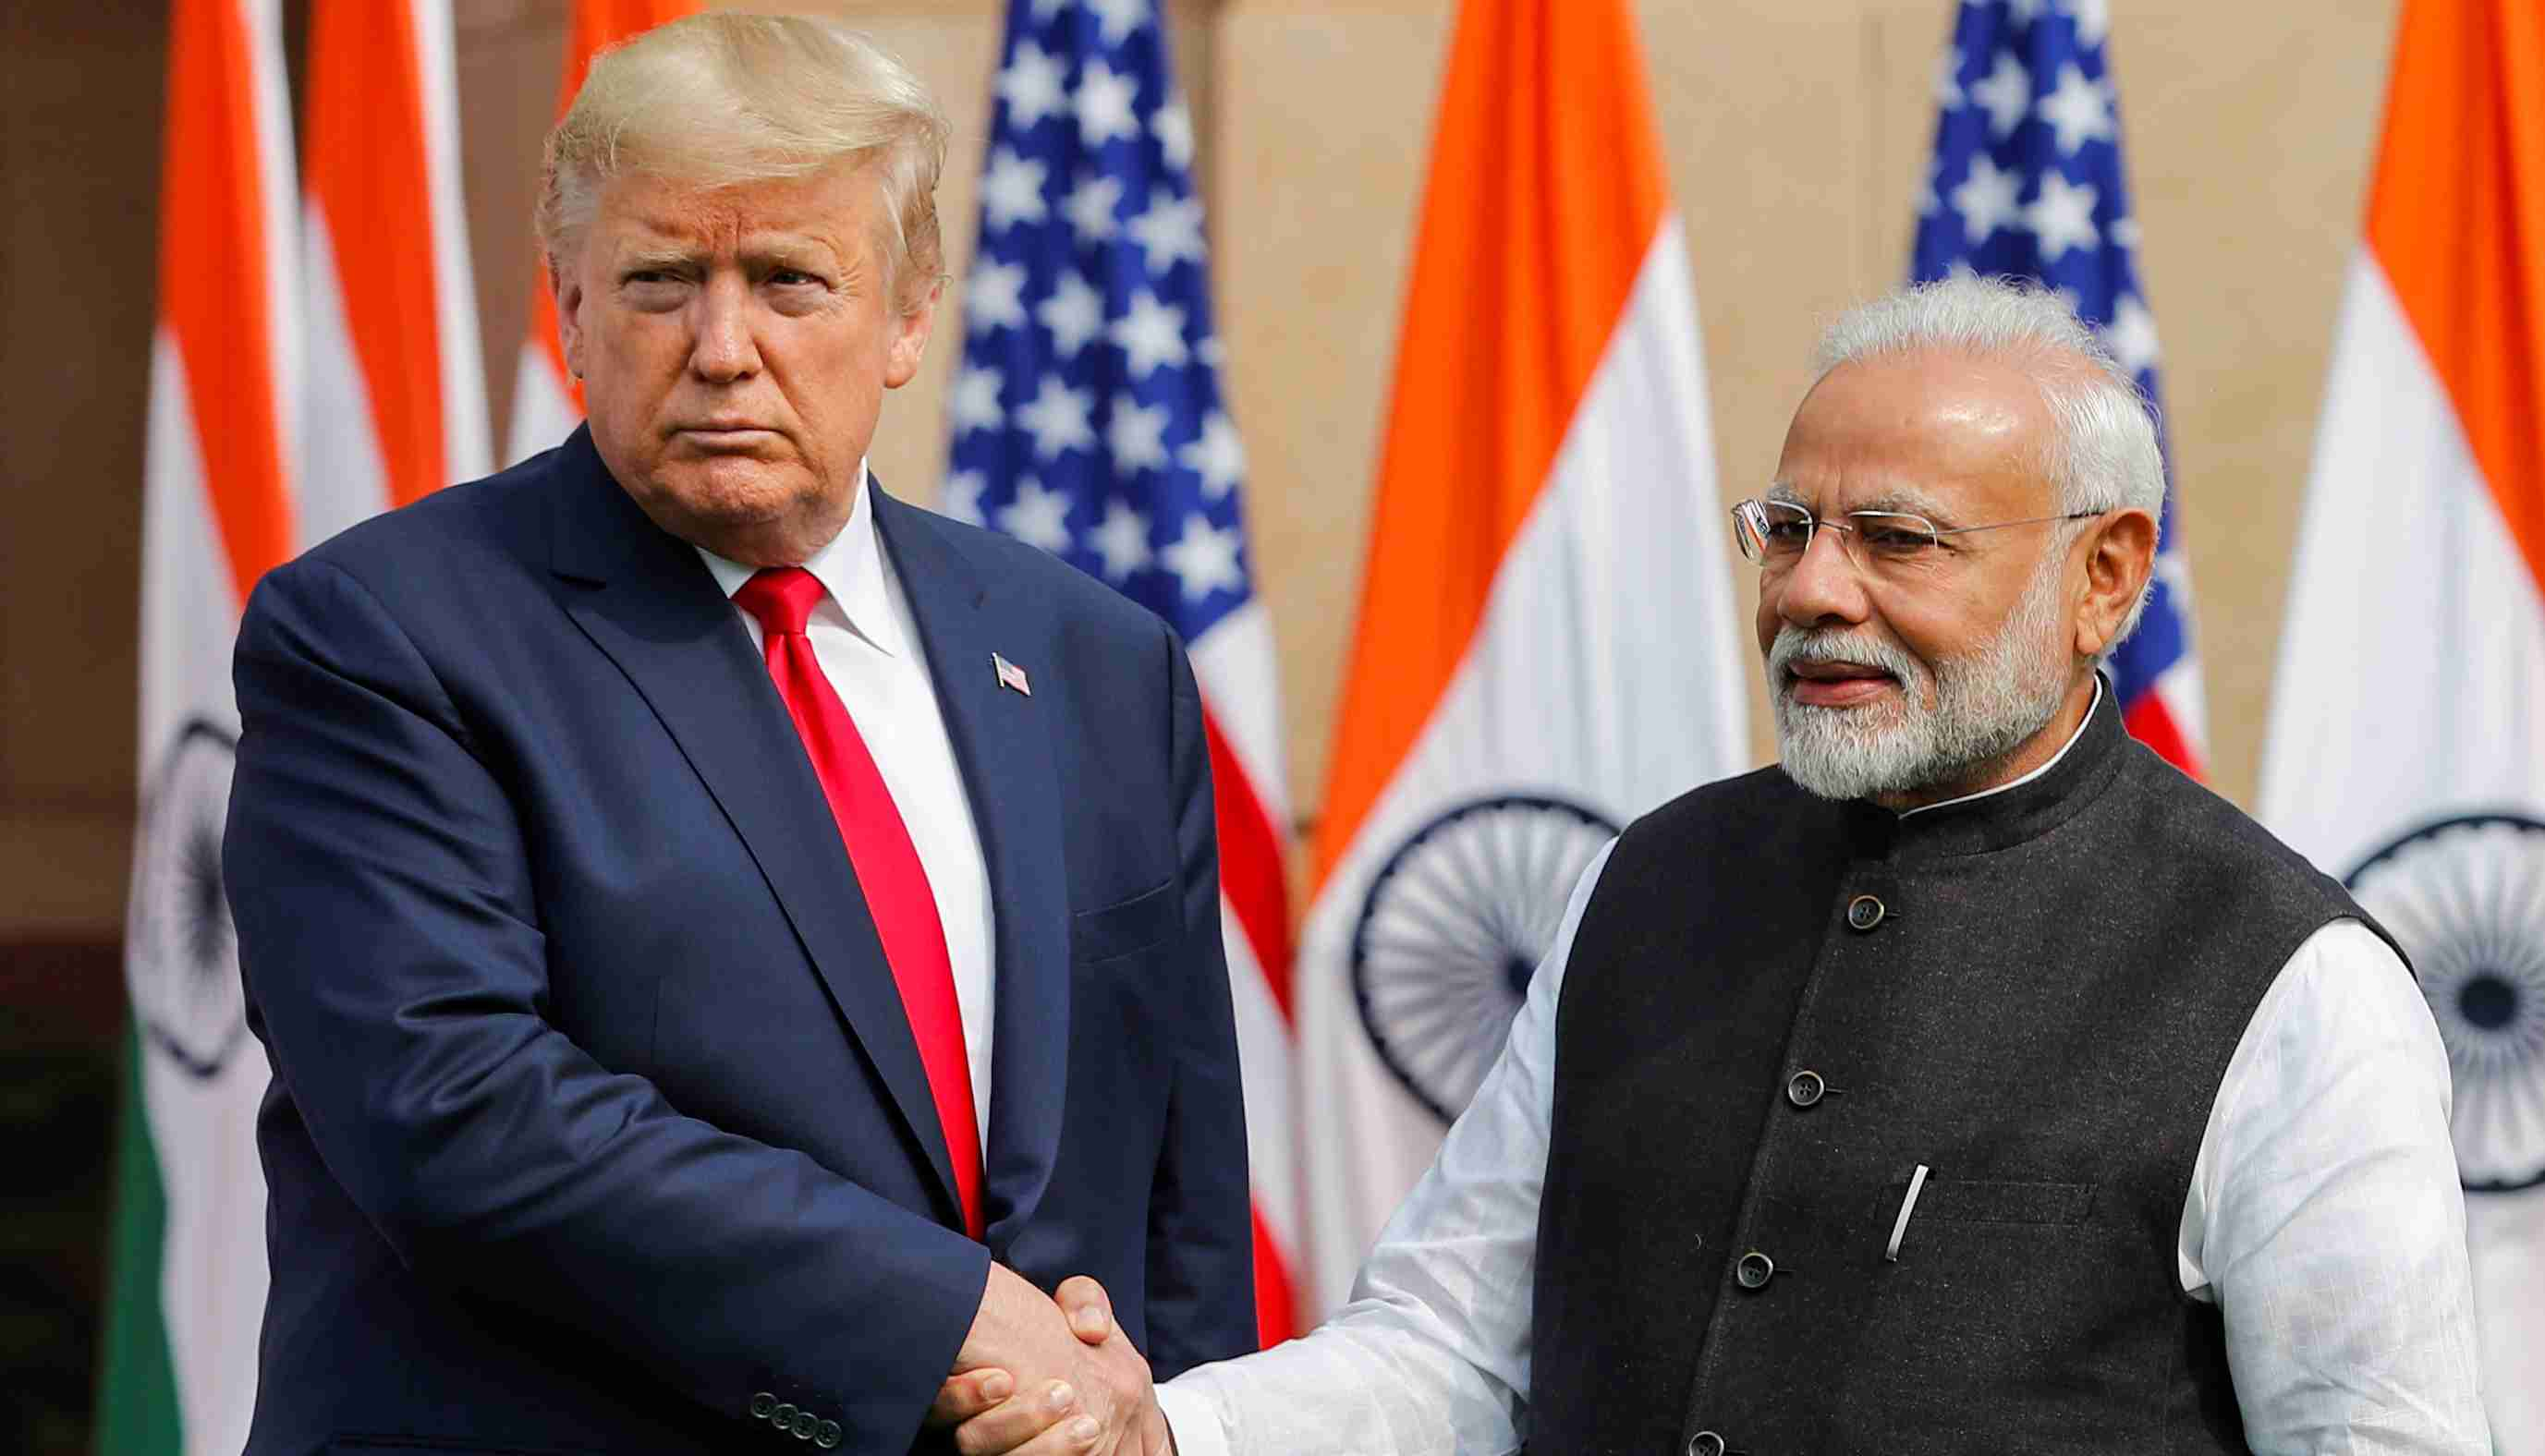 U.S. President Donald Trump shake hands with India's Prime Minister Narendra Modi ahead of their meeting at Hyderabad House in New Delhi, India, February 25, 2020. REUTERS/Adnan Abidi